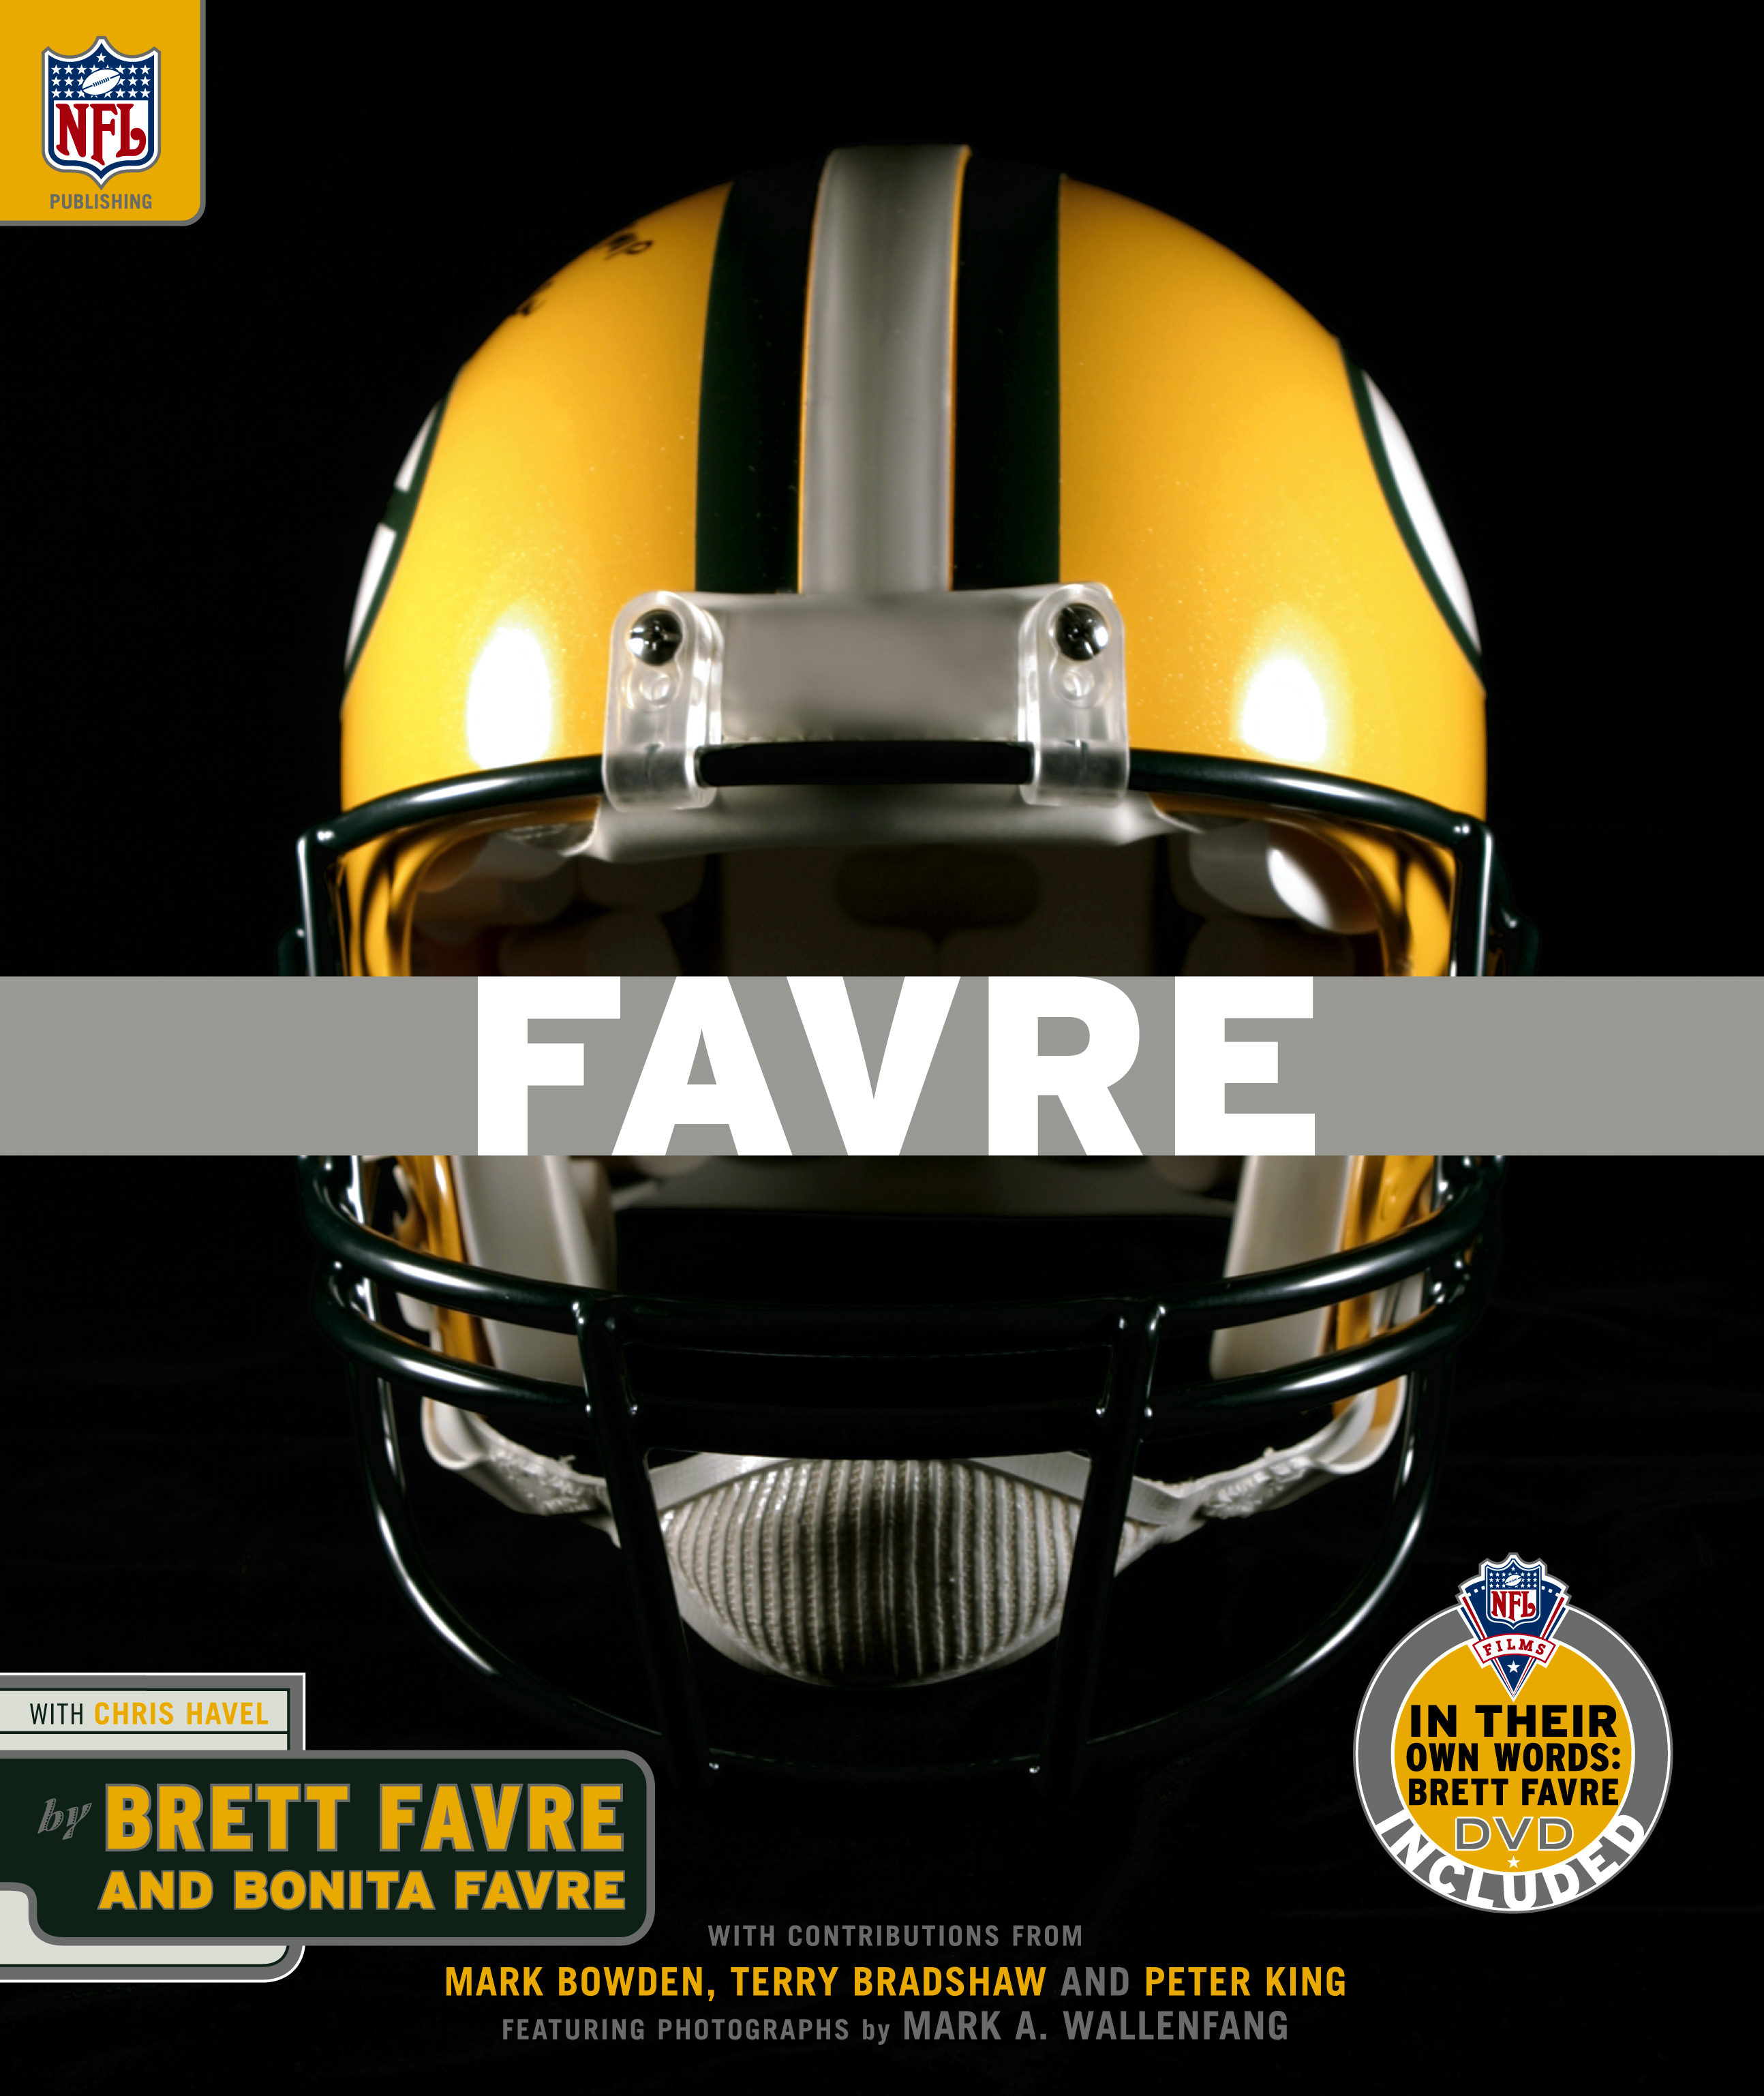 FAVRE-by-Brett-Favre-wallpaper-wp4004719